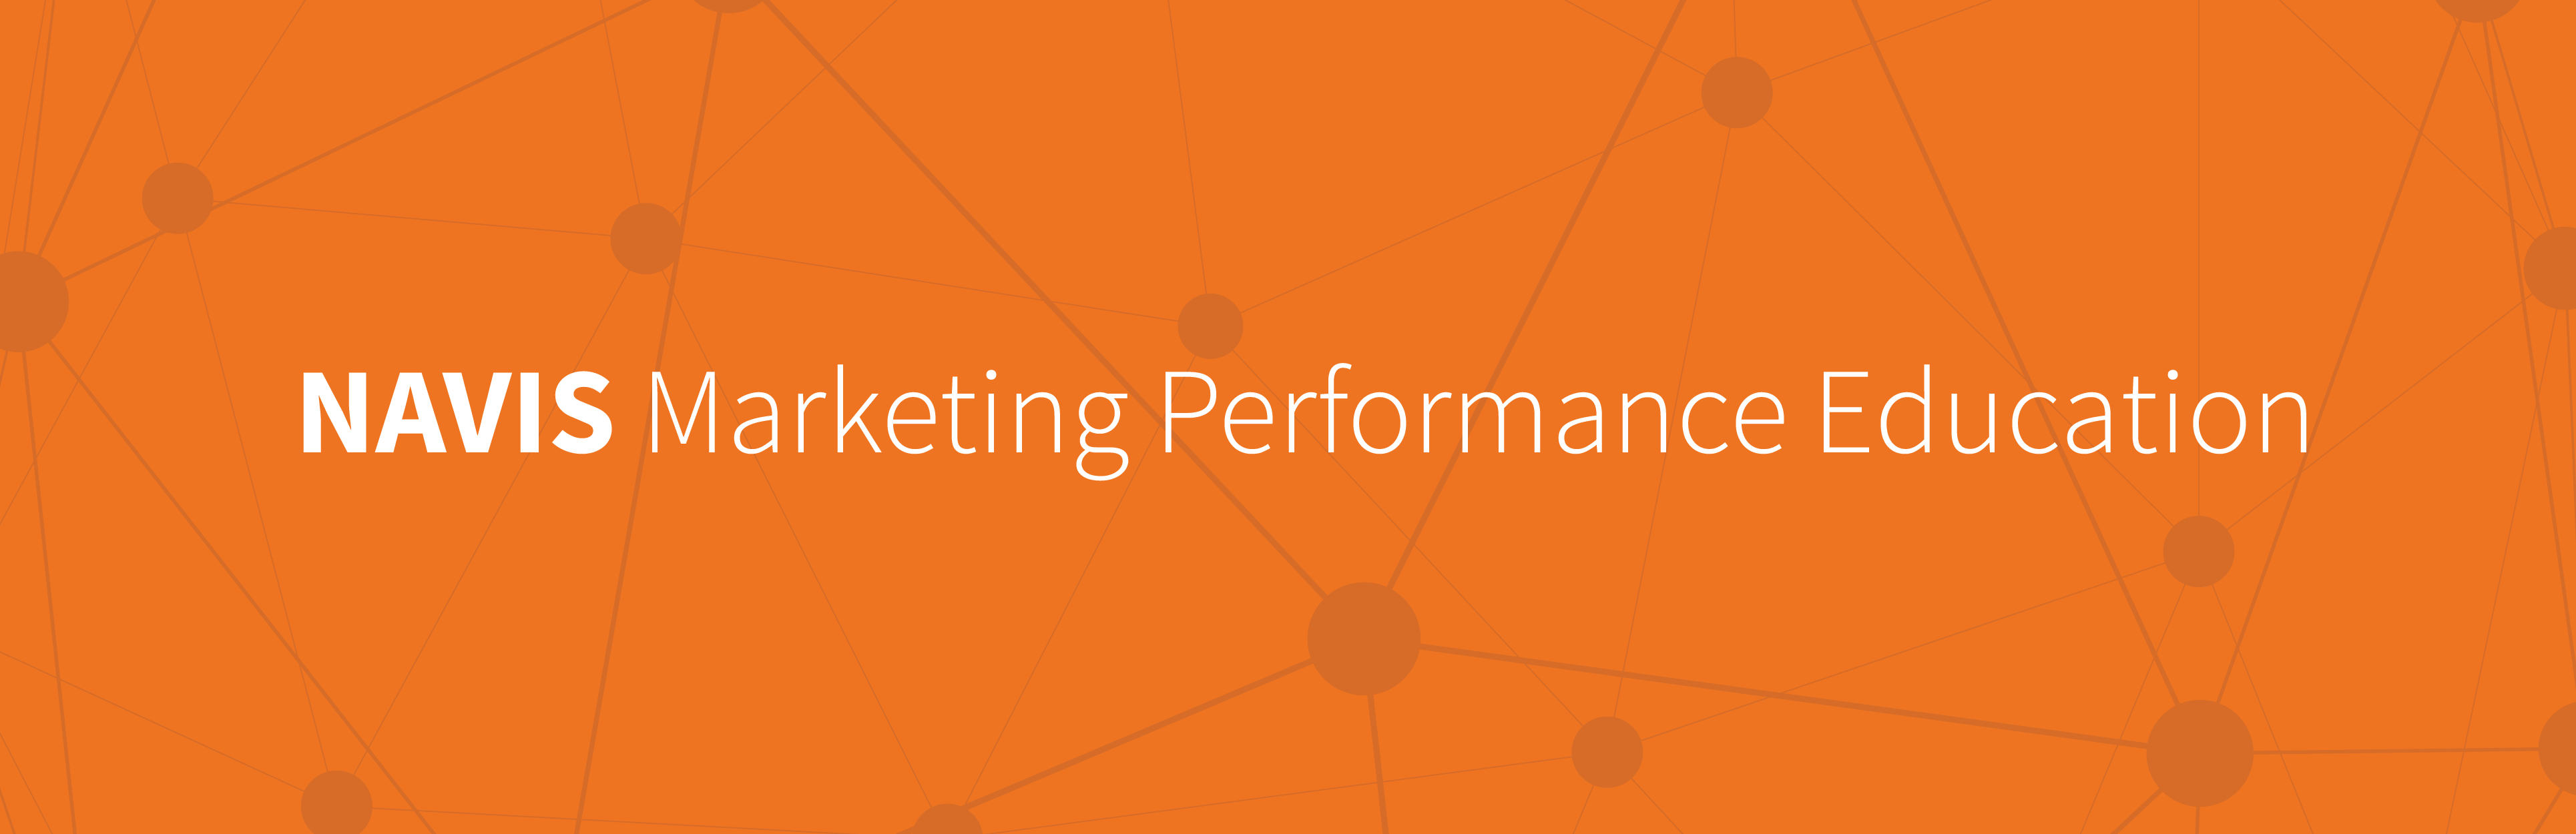 NAVIS Marketing Performance Education Spring 2019